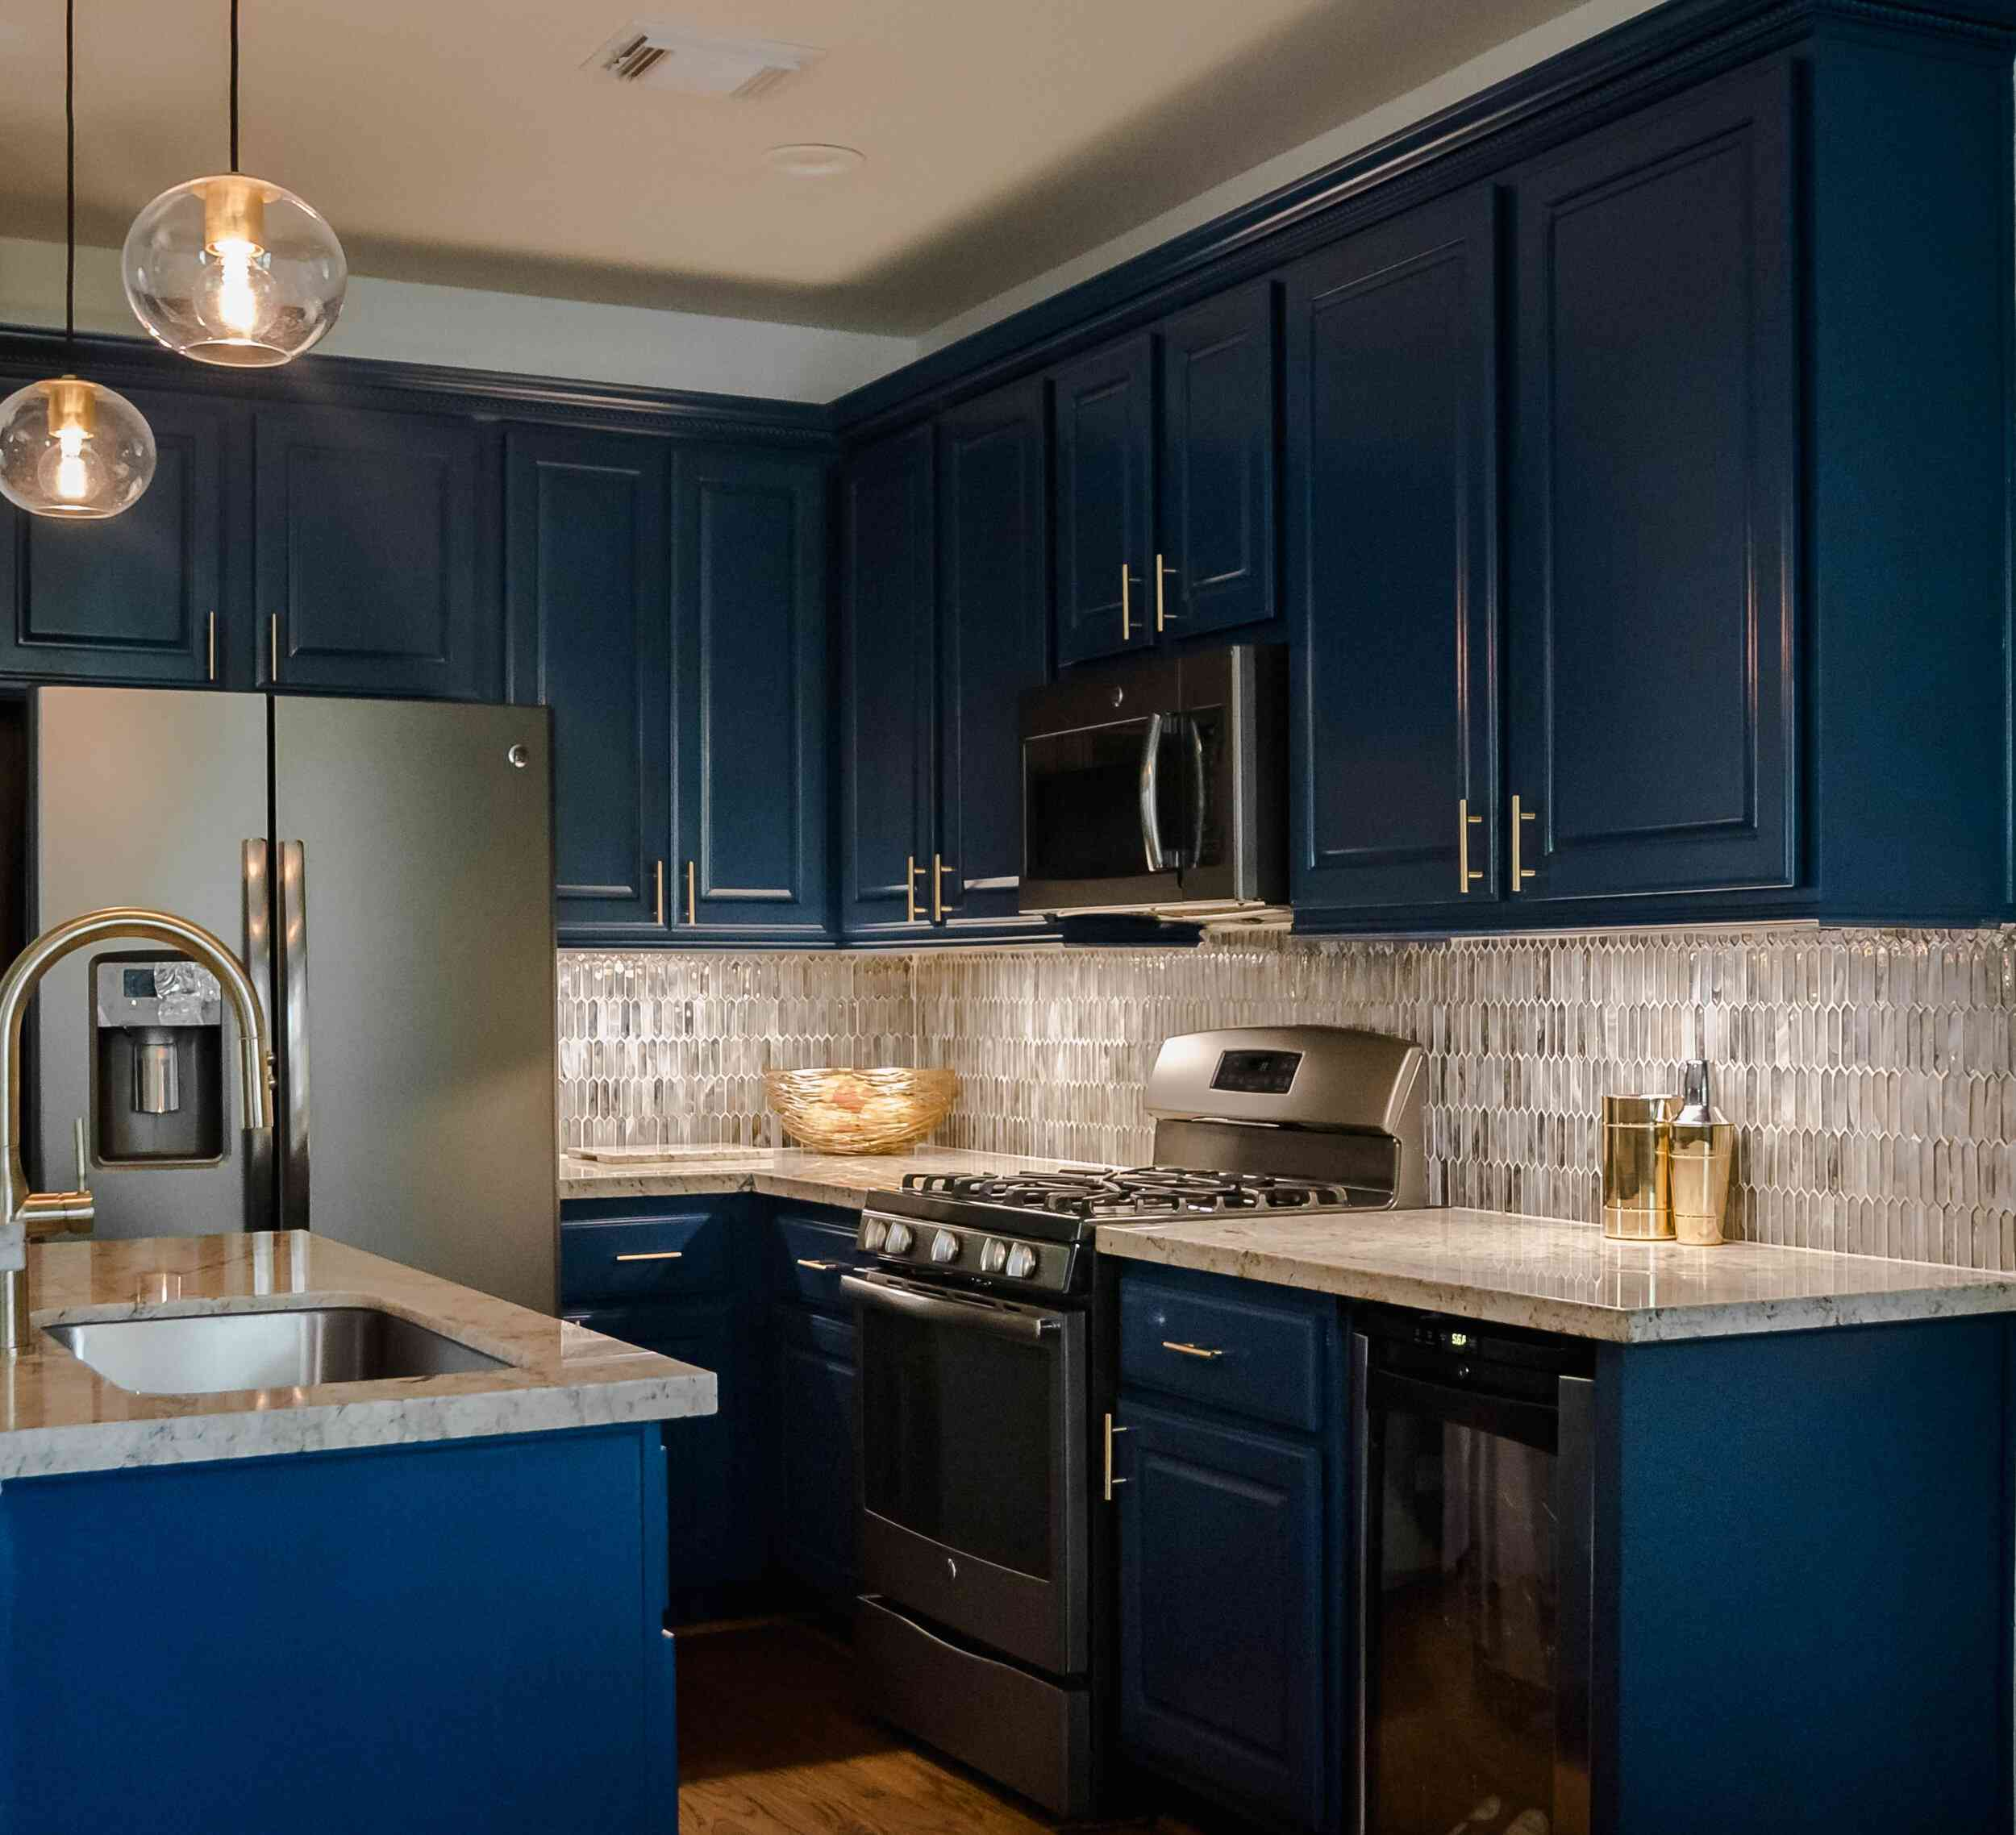 Richly colored blue kitchen cabinets.